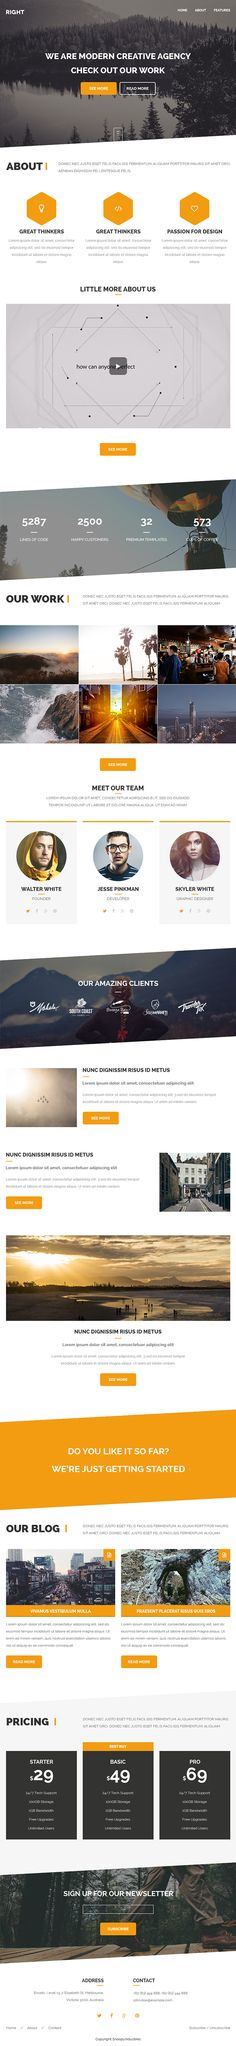 Right - Responsive Mail + Builder/Editor Access on Behance